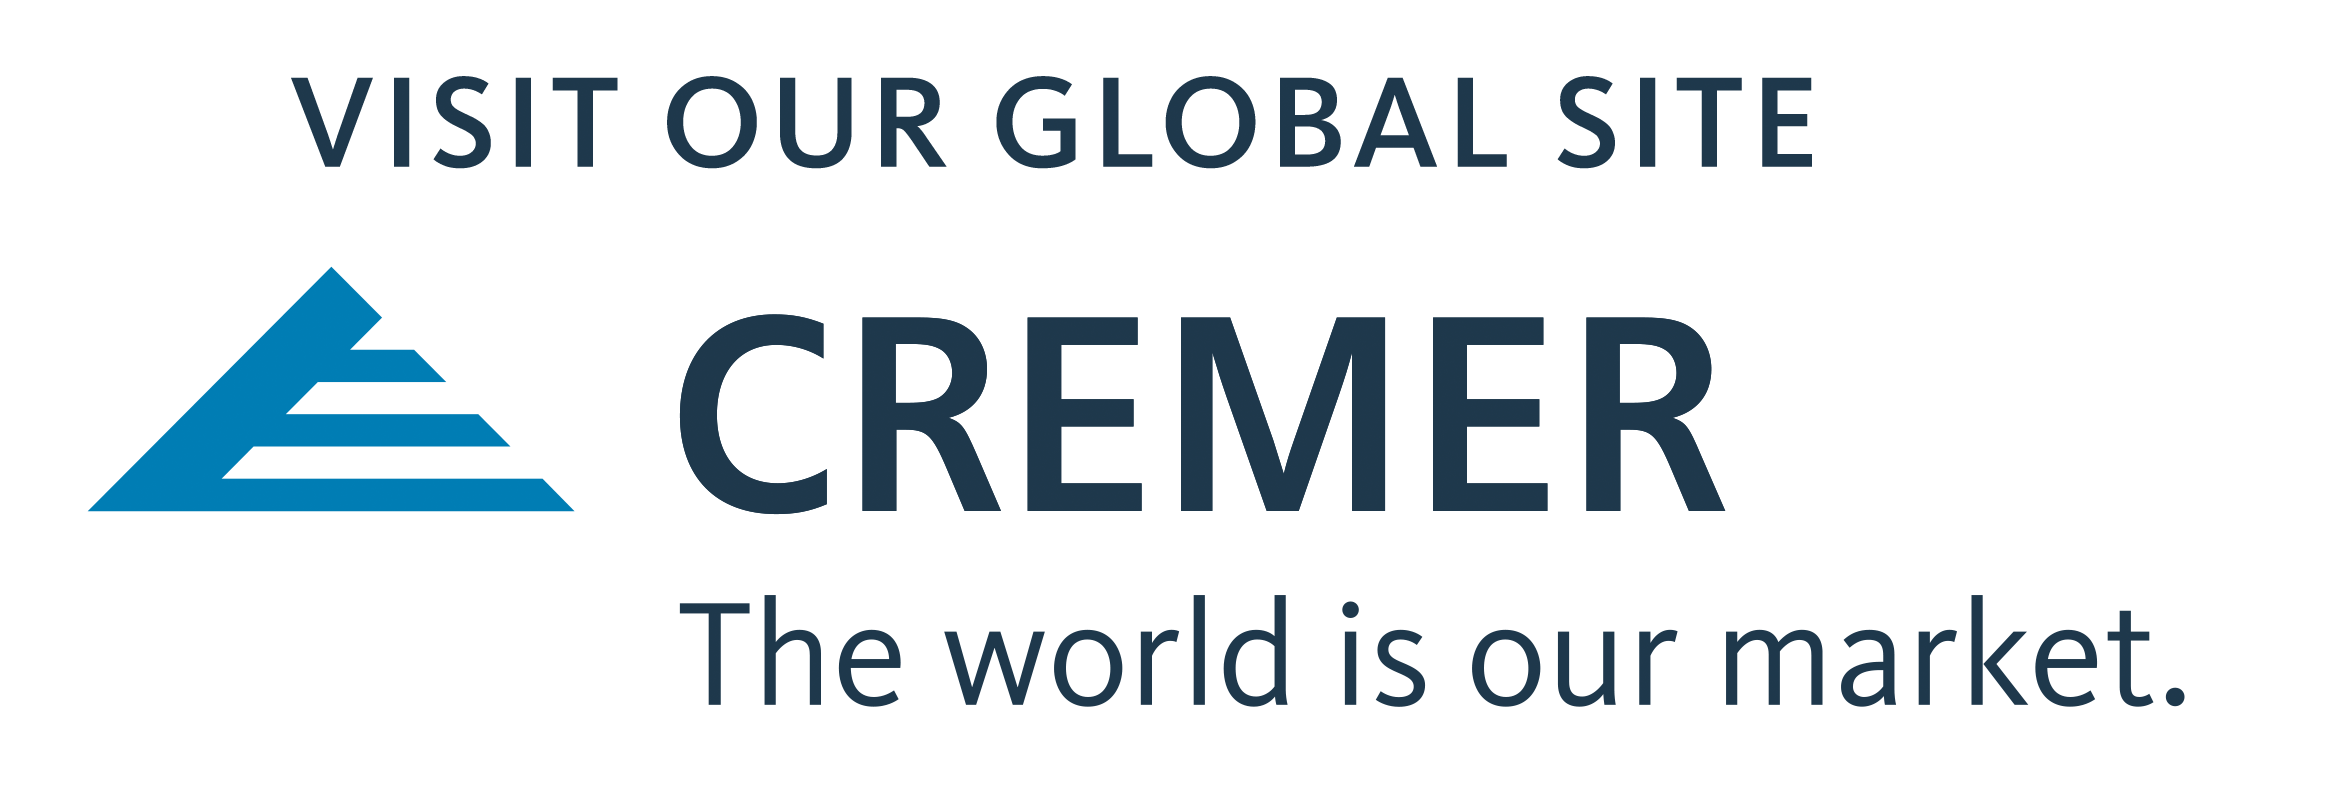 visitourglobalsite_logo.png